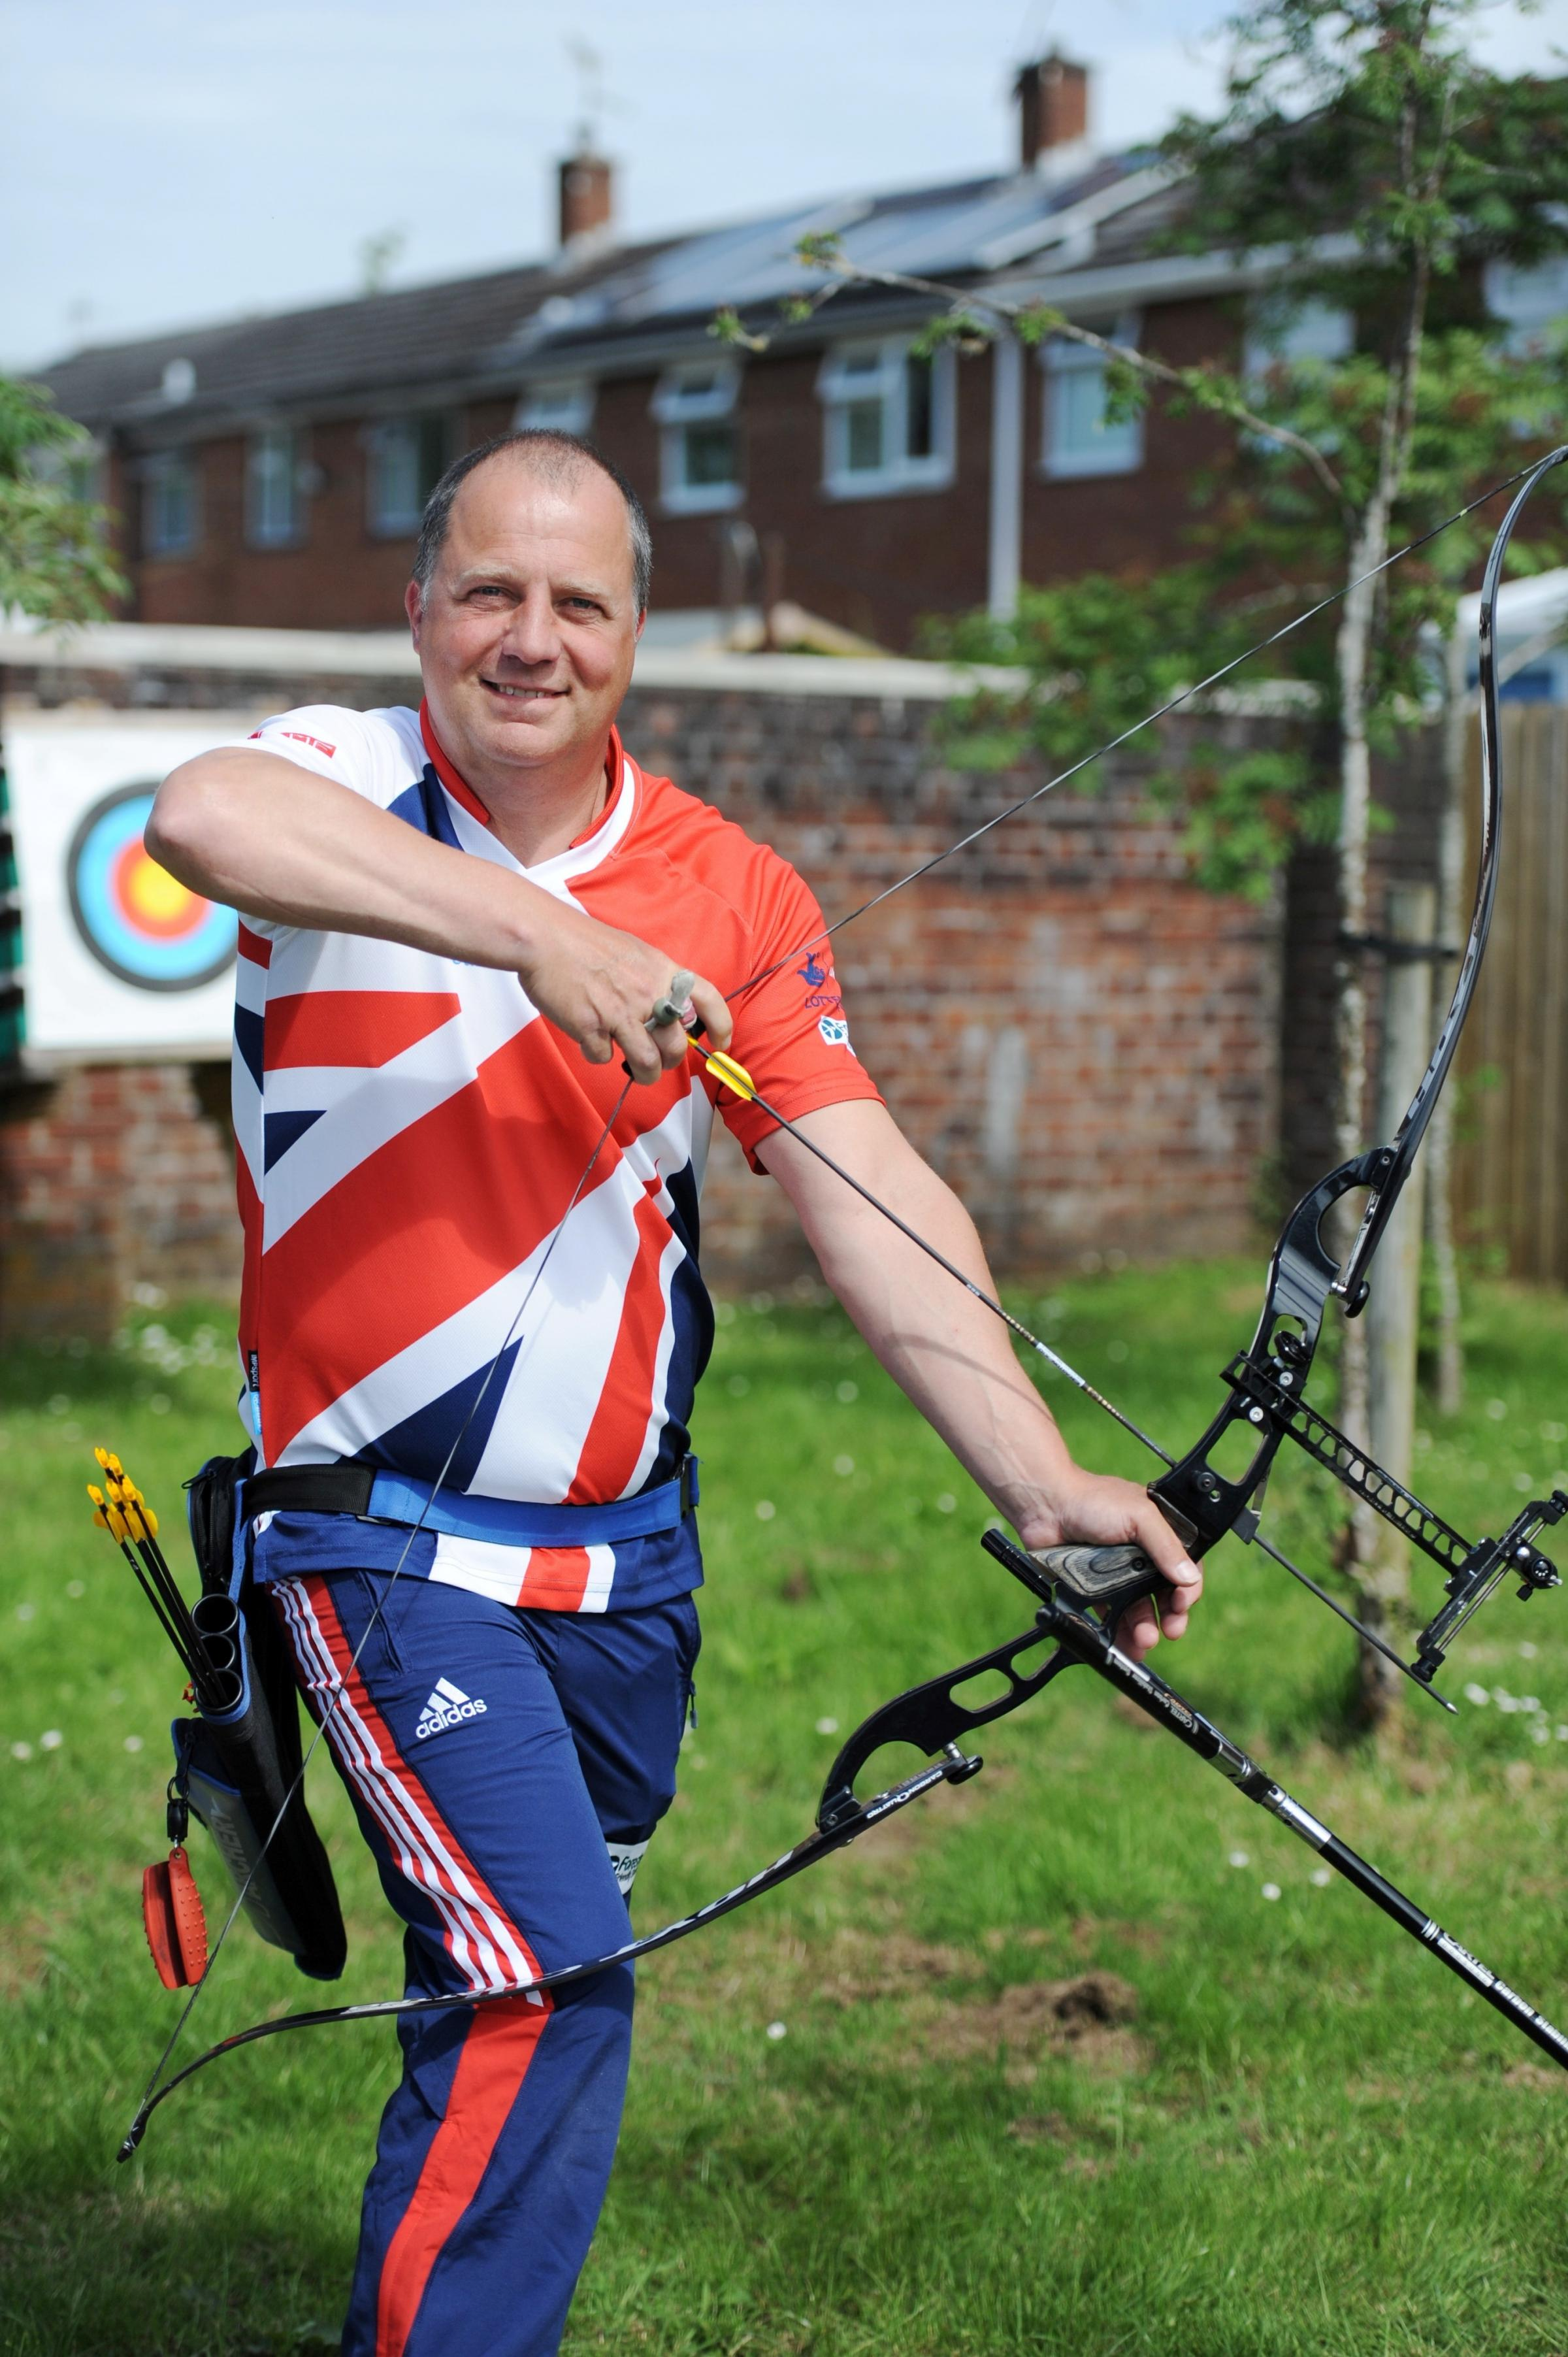 A Cwmbran Archer is representing GB in archery events all over Europe despite suffering with Multiple Sclerosis.  Pictured at home is Dave Phillips with his Hoyt recurve competition bow. (7139627)